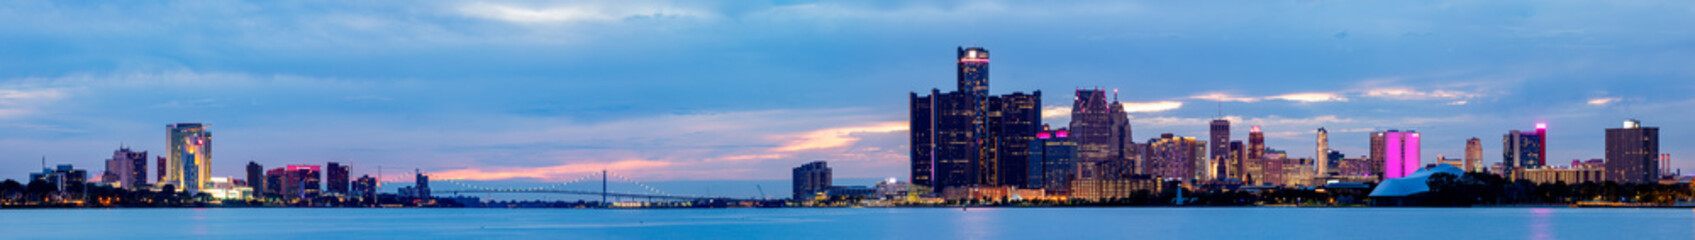 The Cities of Detroit and Windsor